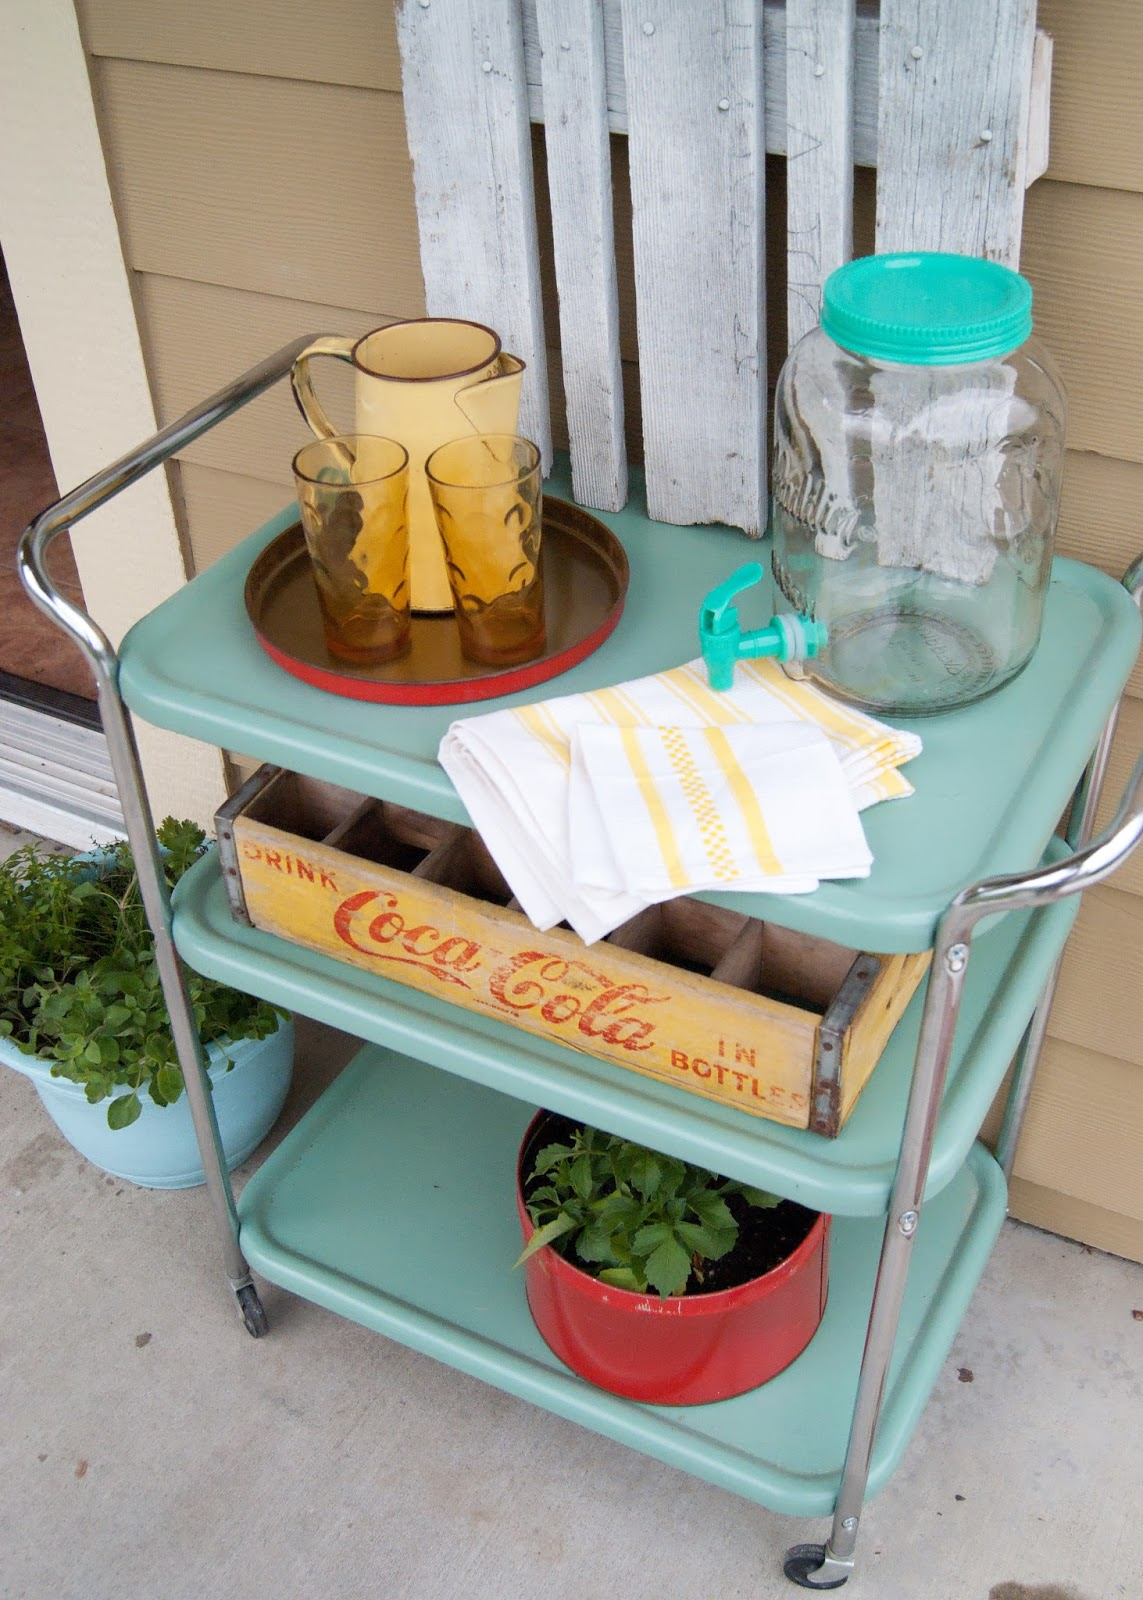 Vintage cart, glasses, coke crate and tea towels - after